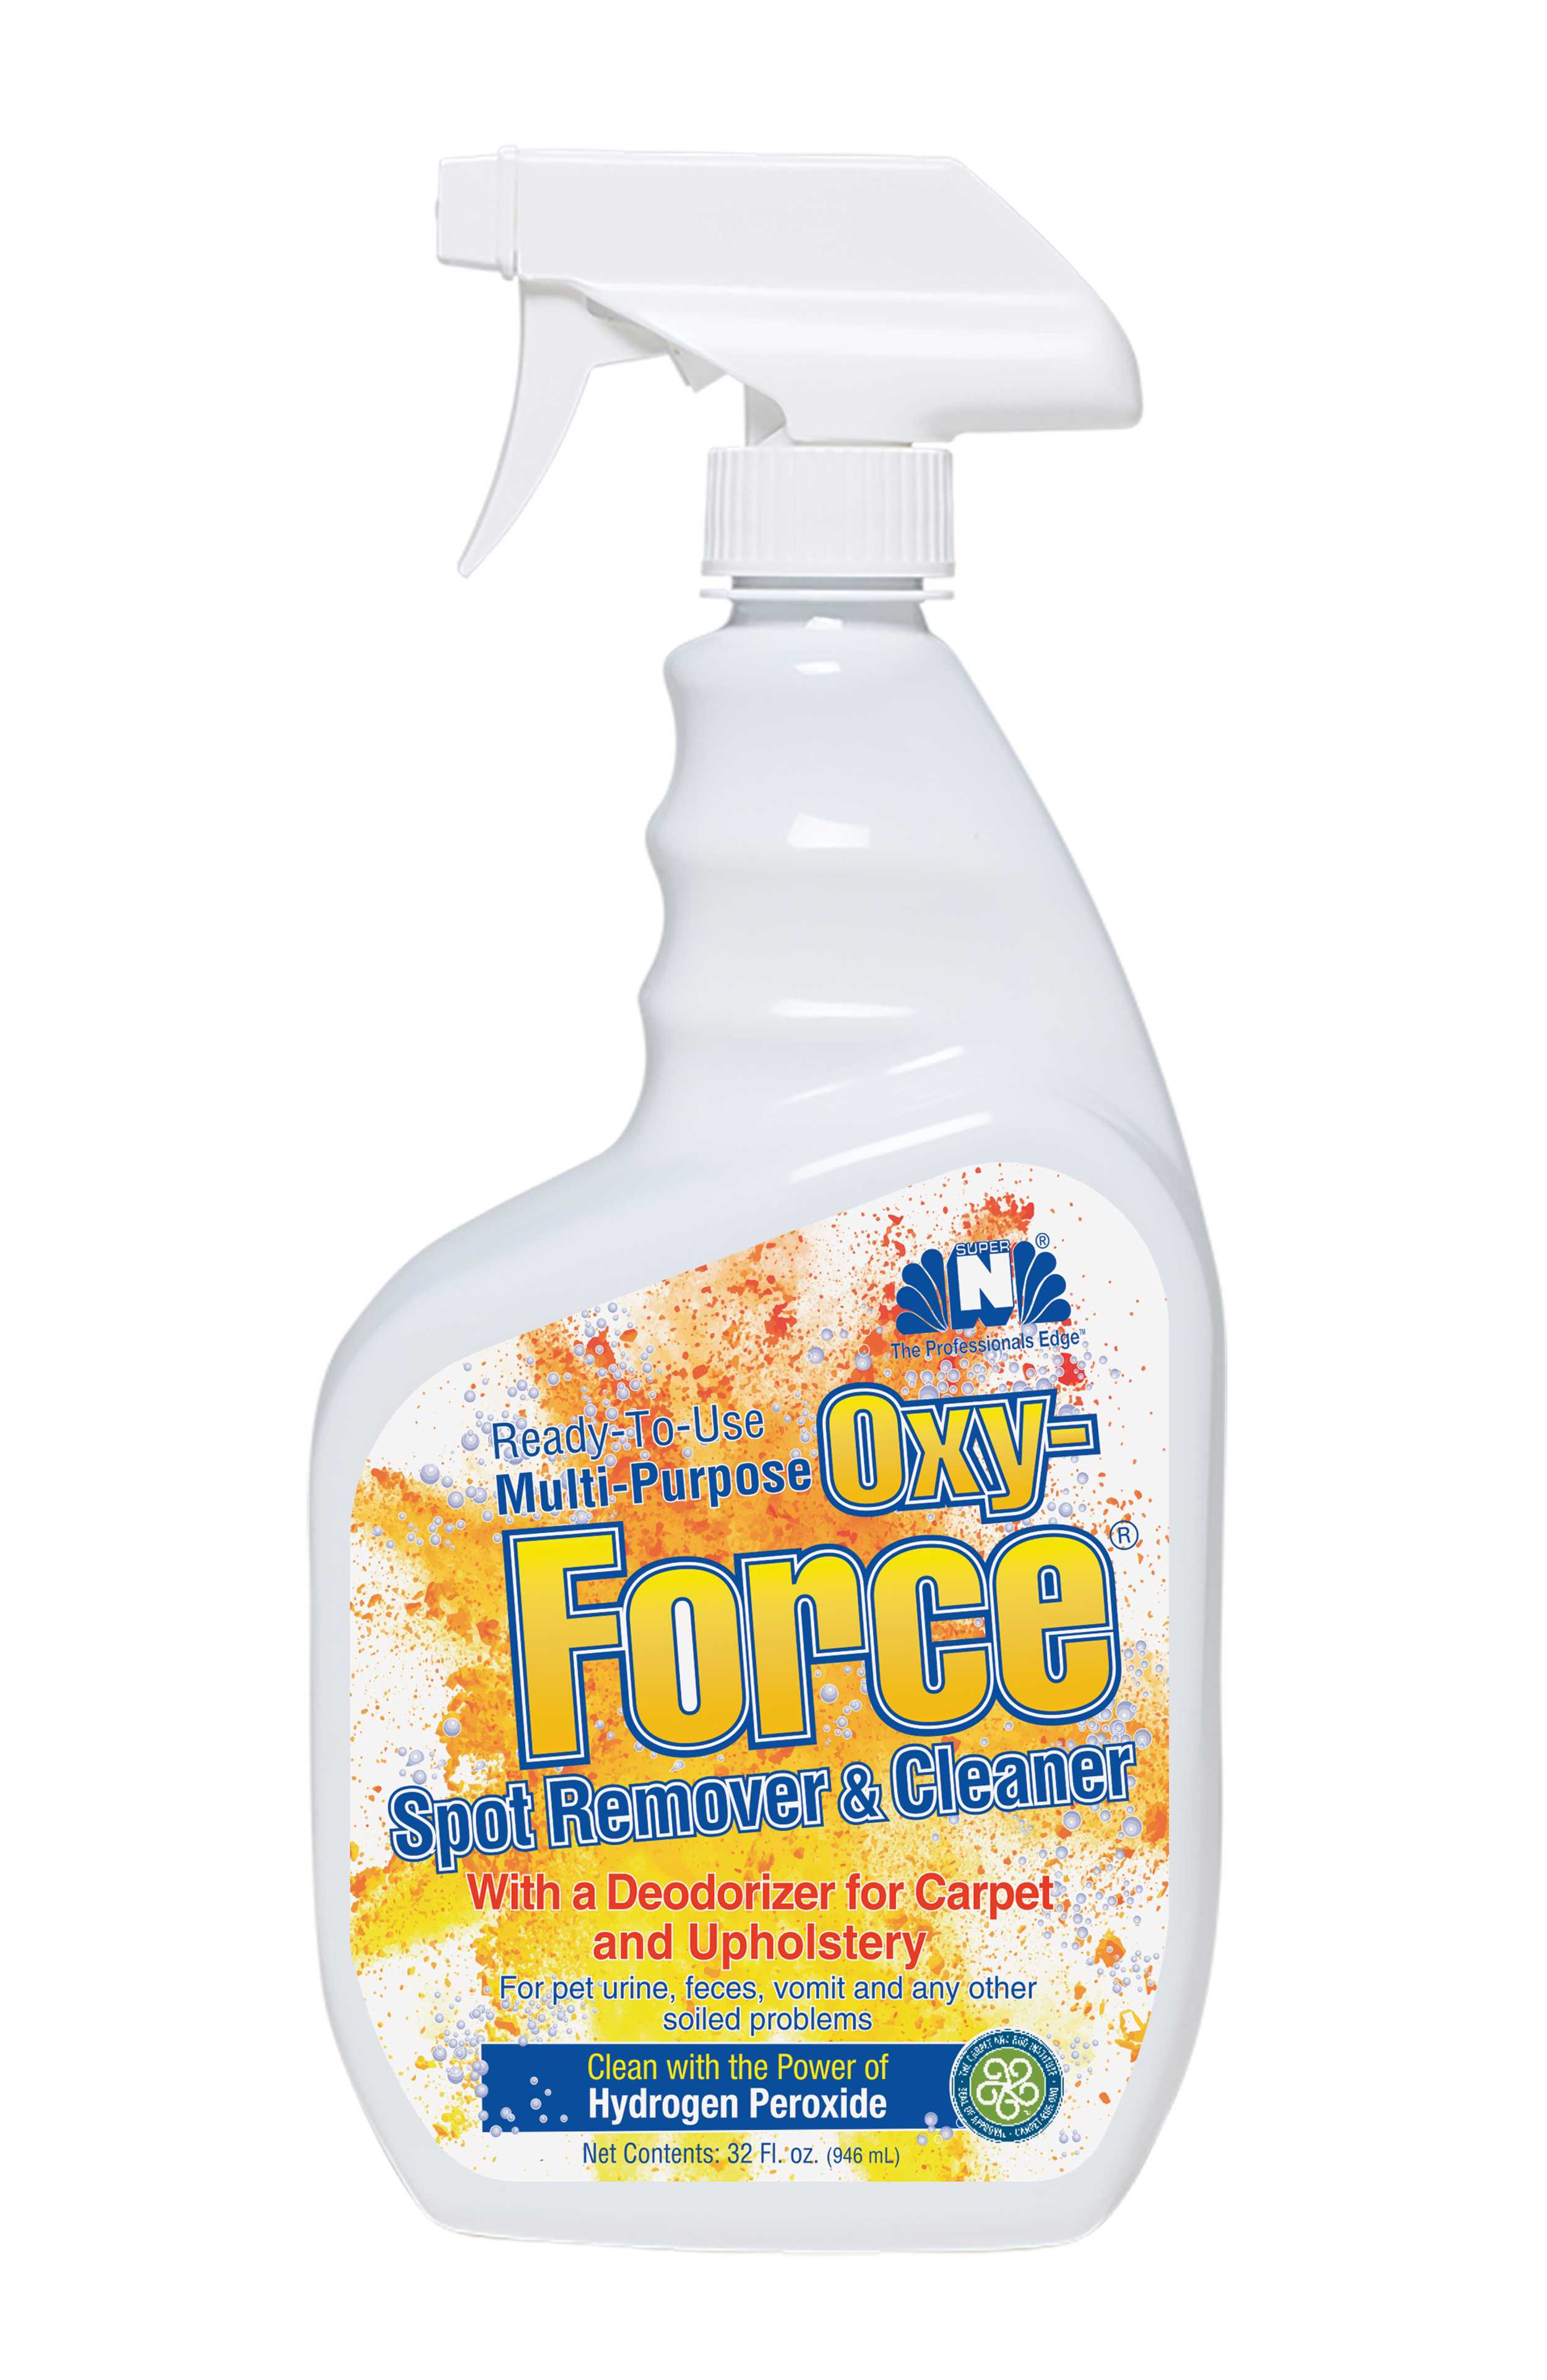 Oxy-Force RTU Spot and Stain Remover